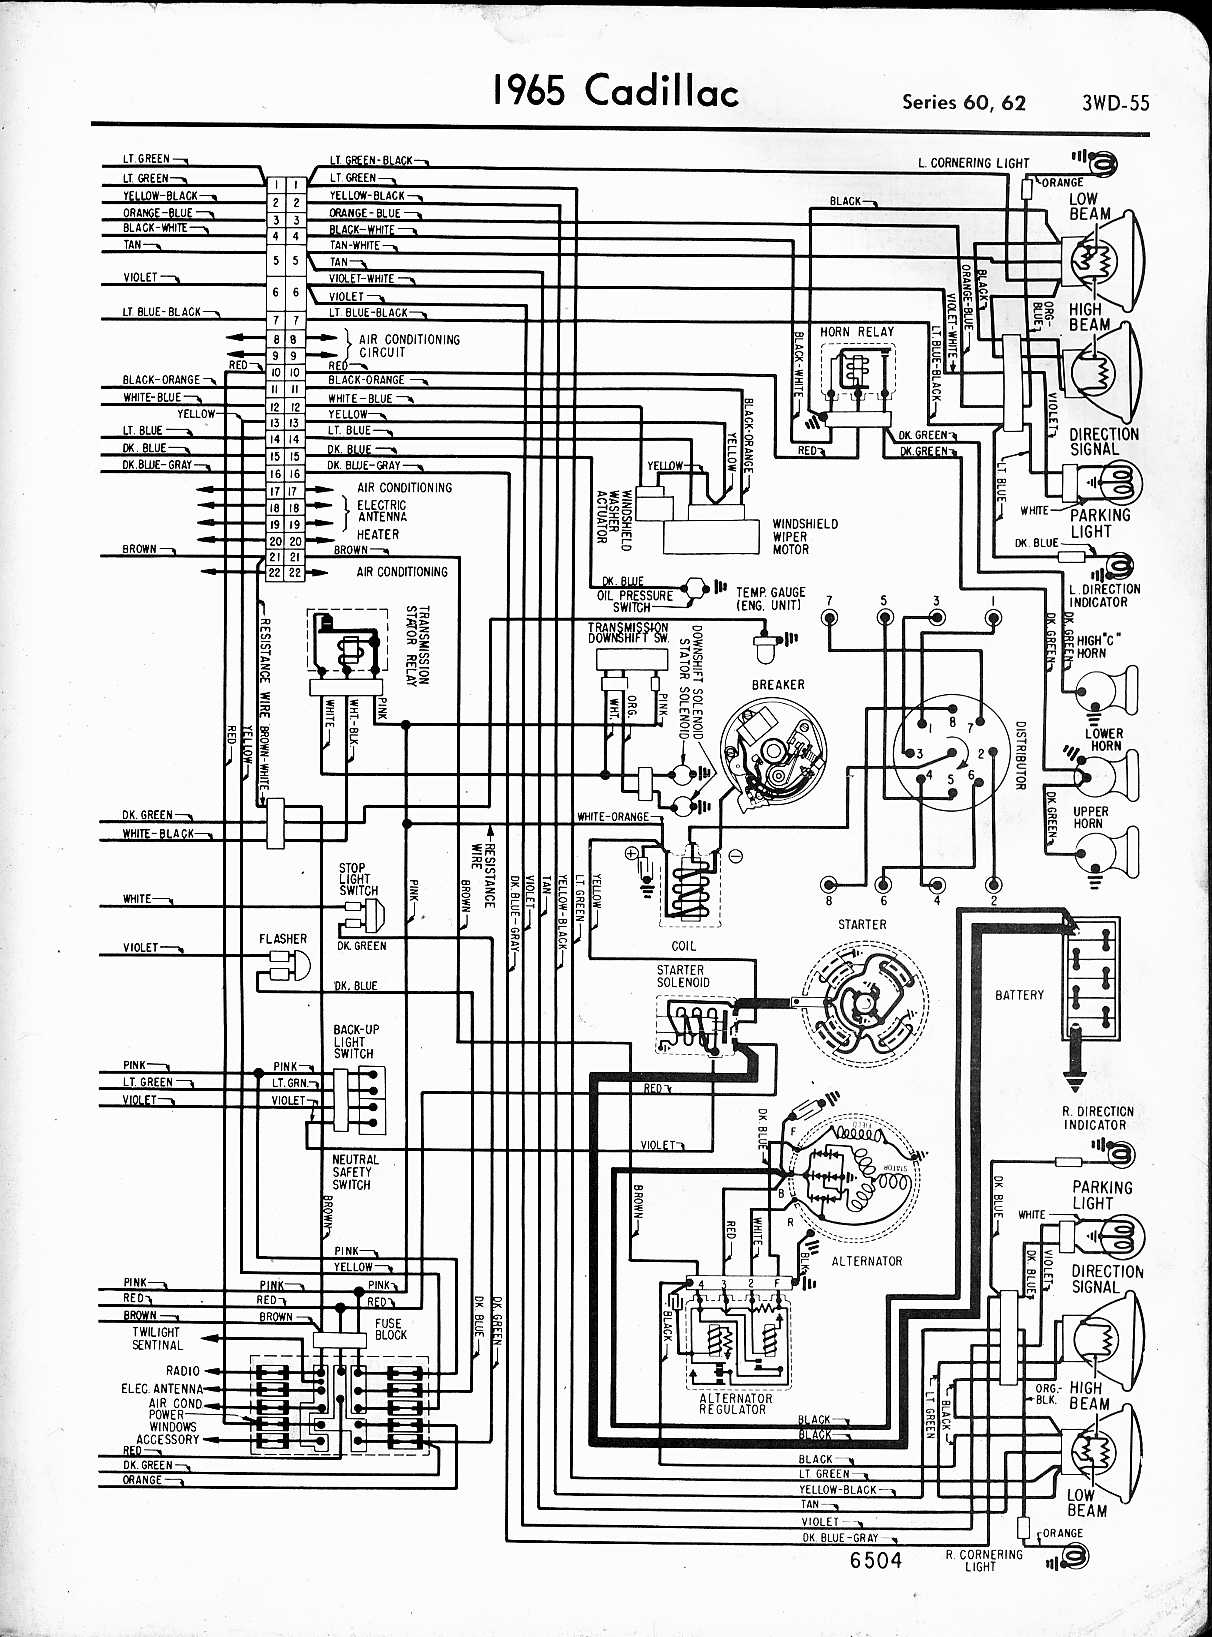 1987 Cadillac Allante Fuse Box Diagram Wiring Libraries 1989 Brougham Location Diagrams Scematiccadillac Parts Third Level